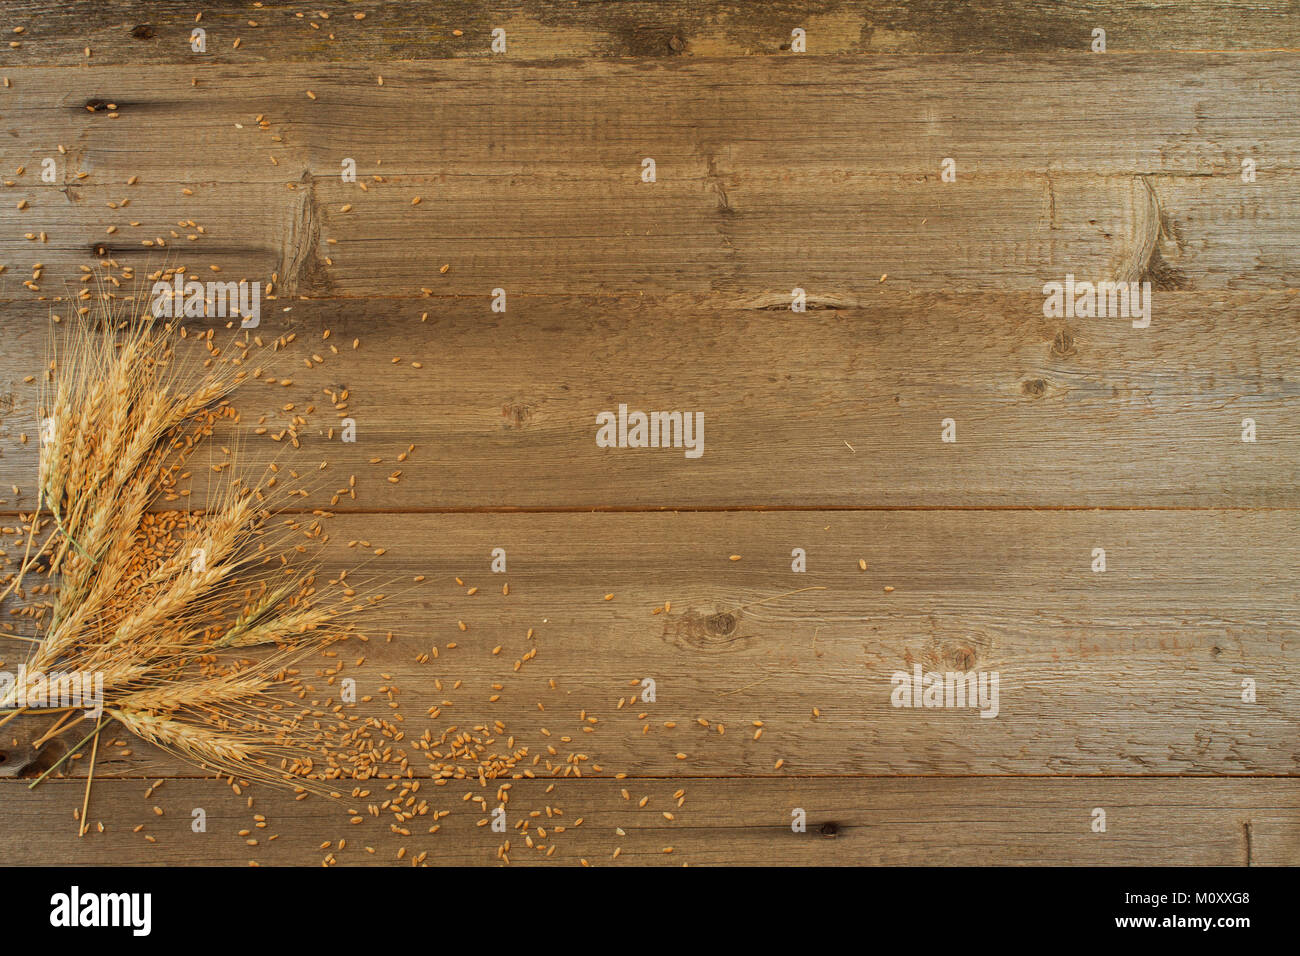 frame of wheat ears with grains on the wooden background - Stock Image